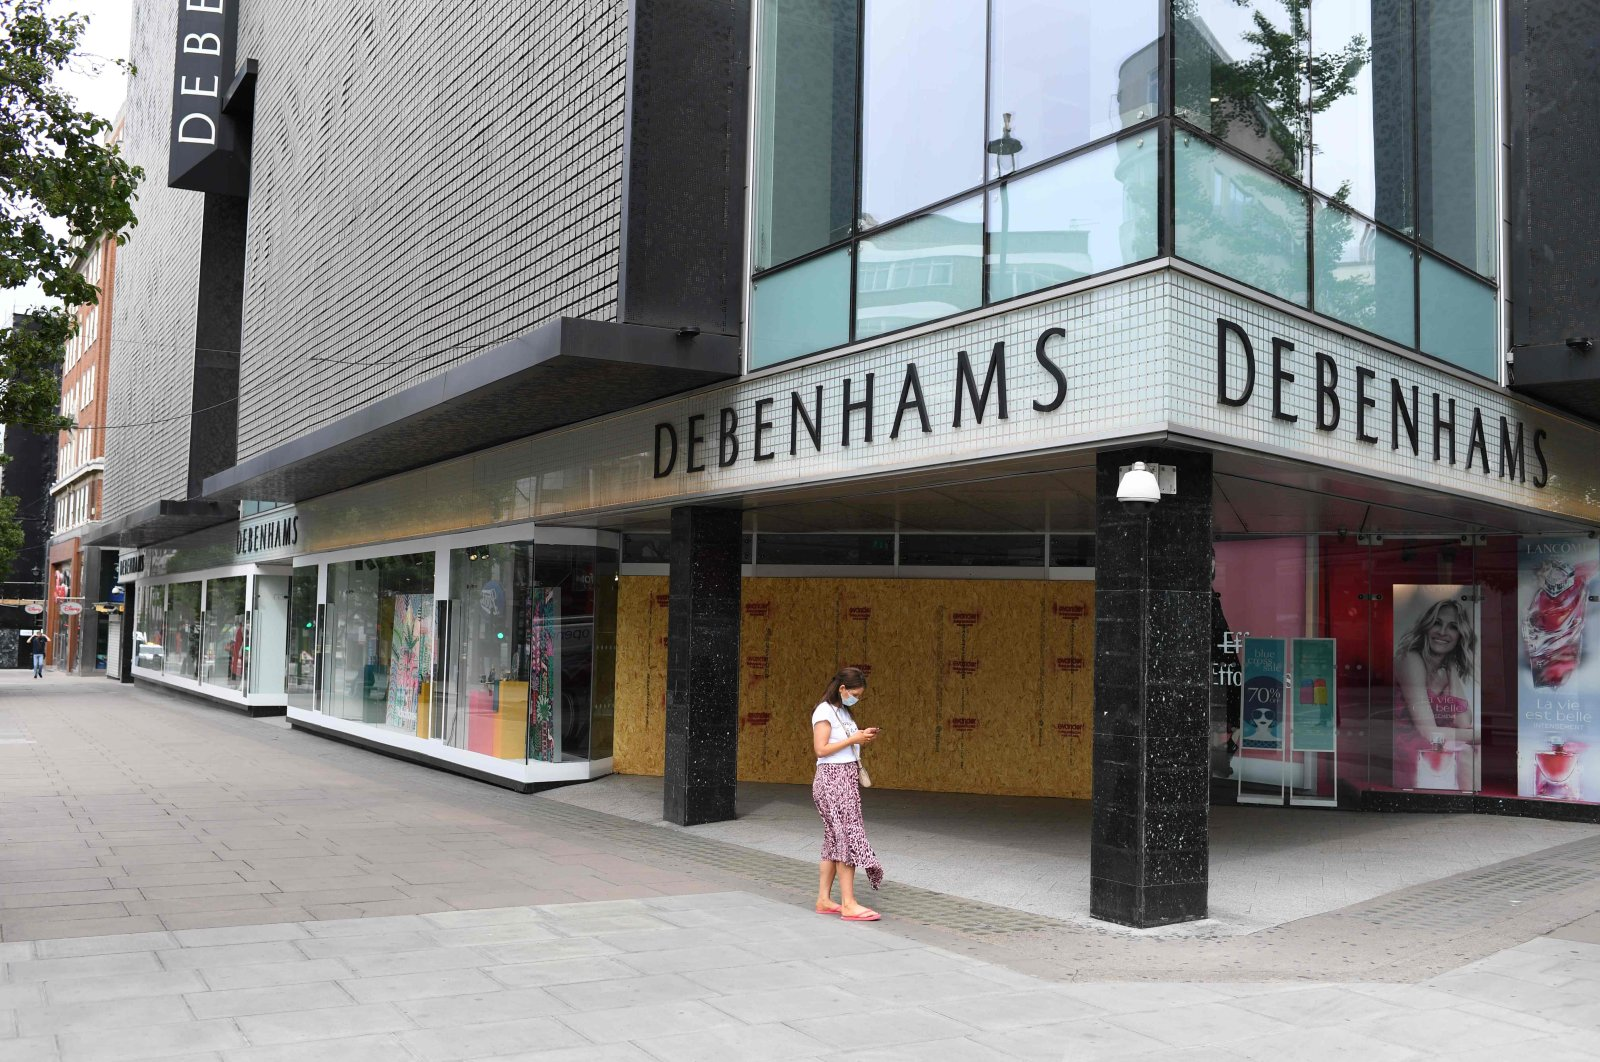 A woman wearing a face mask as a precaution walks past the shut and boarded up Debenhams department store on Oxford Street, London, U.K., May 22, 2020. (AFP Photo)